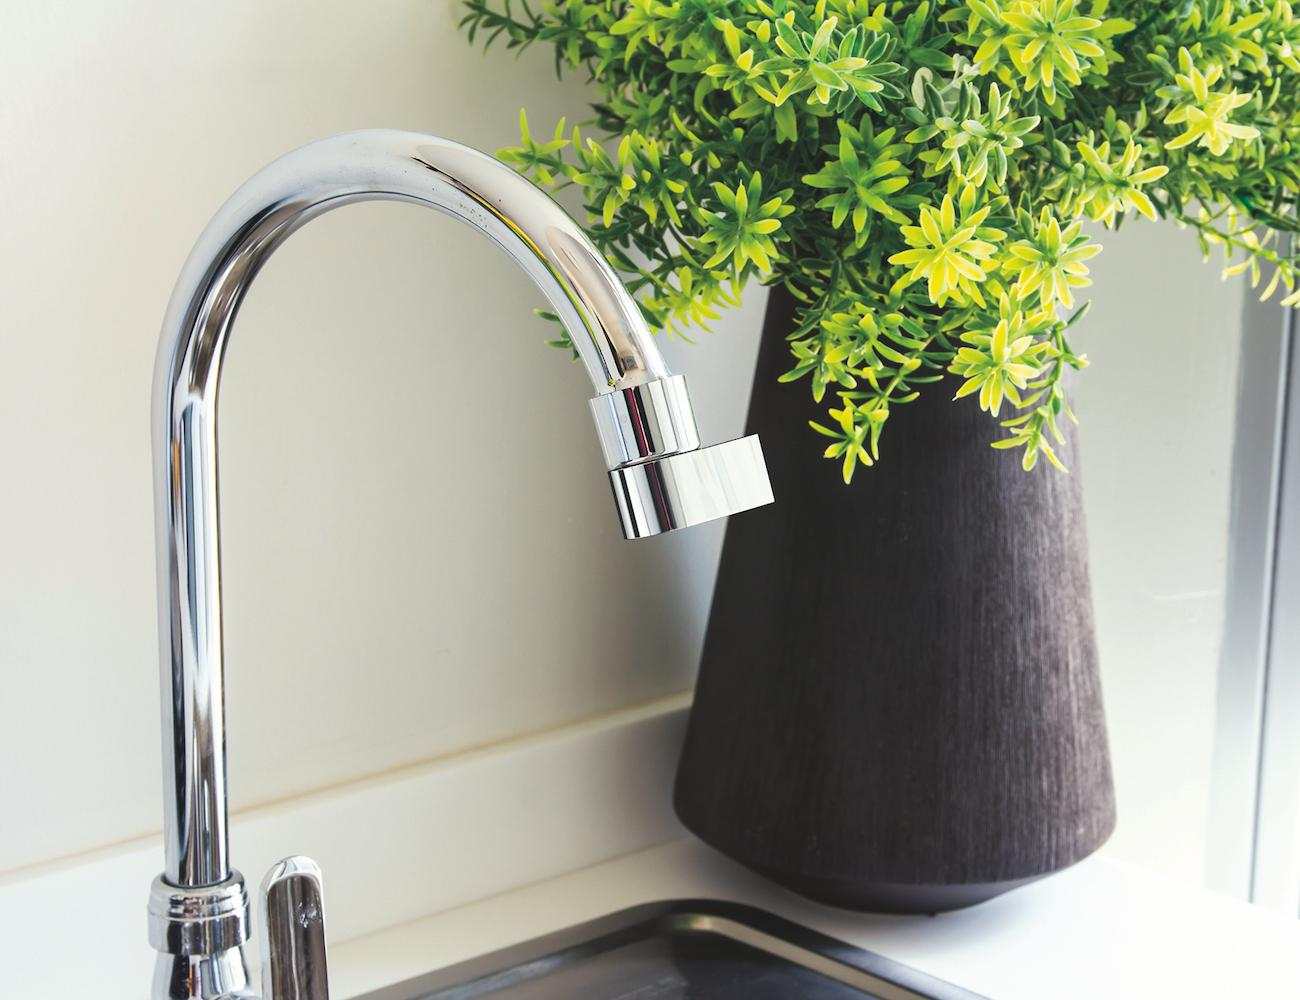 Altered – Nozzle Water Saving Tap